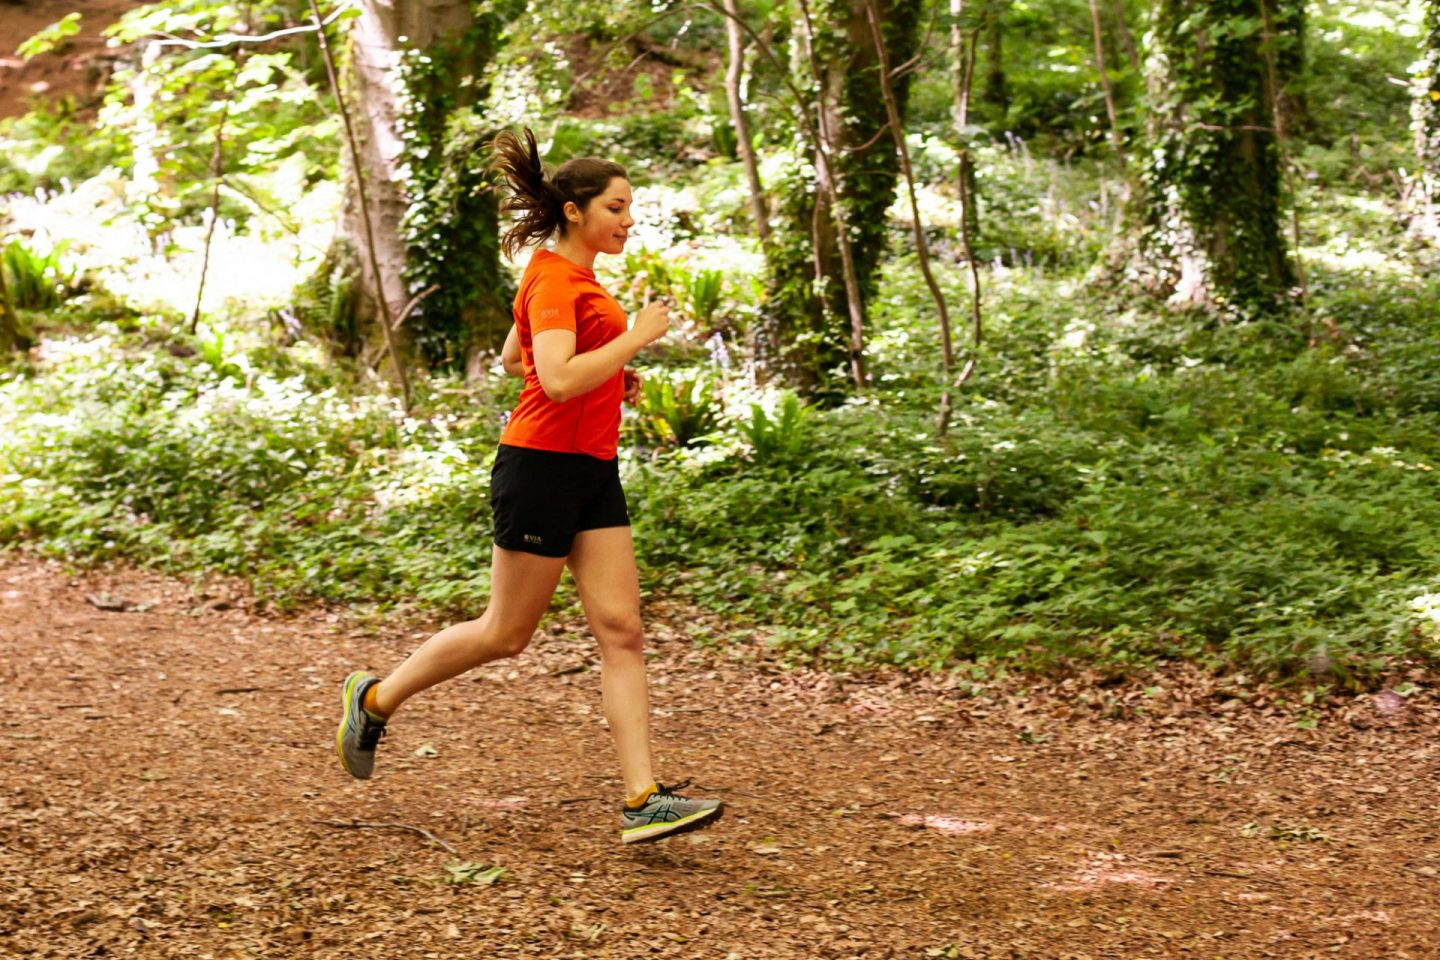 Montane Trail Running Kit Review | The Girl Outdoors Sian Lewis